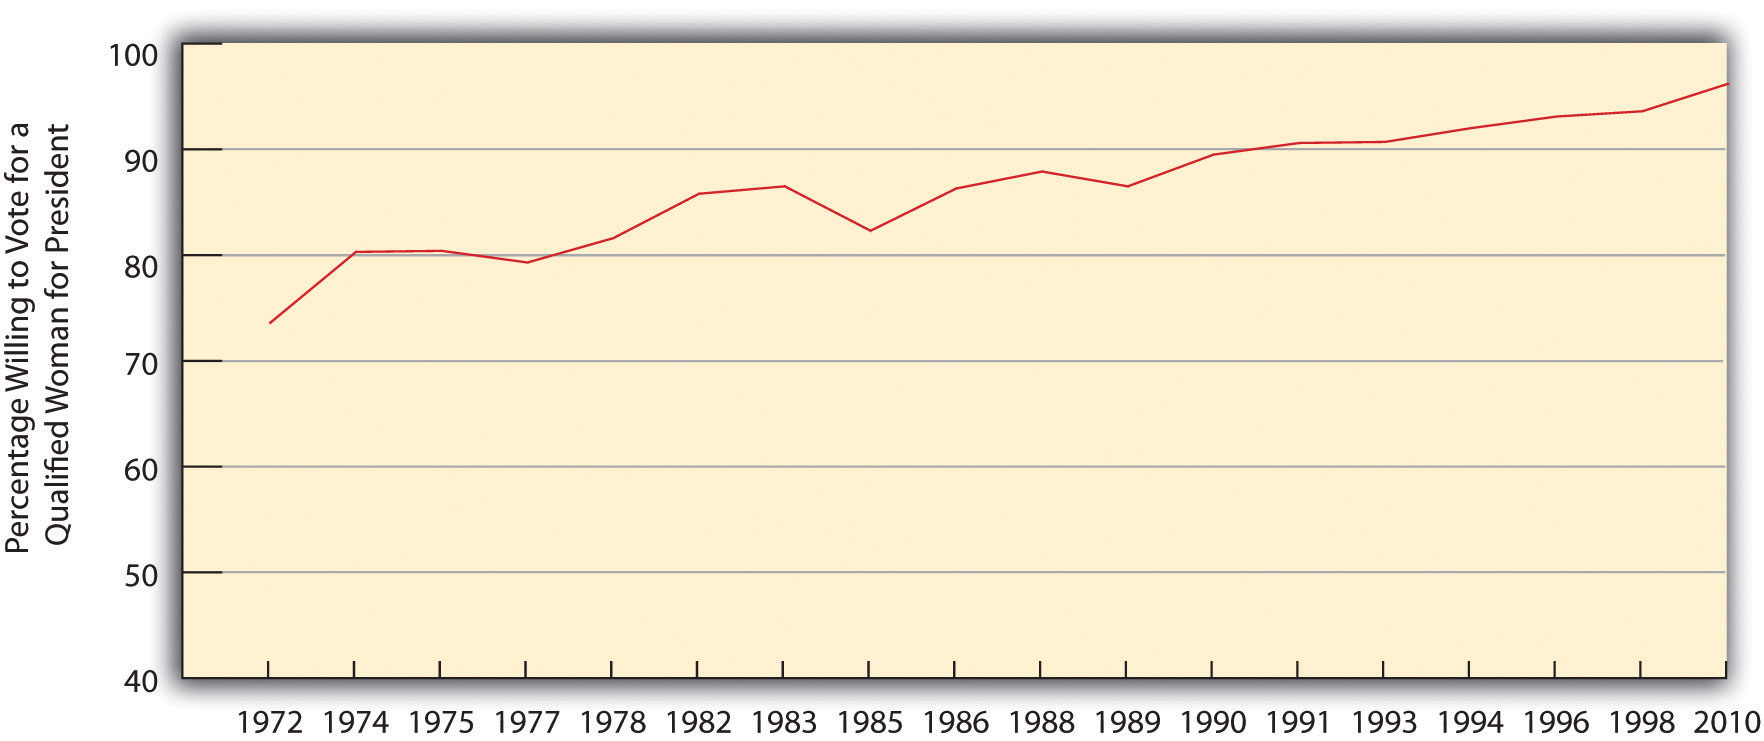 The change in willingness to vote for a qualified woman for president has steadily increased since 1972